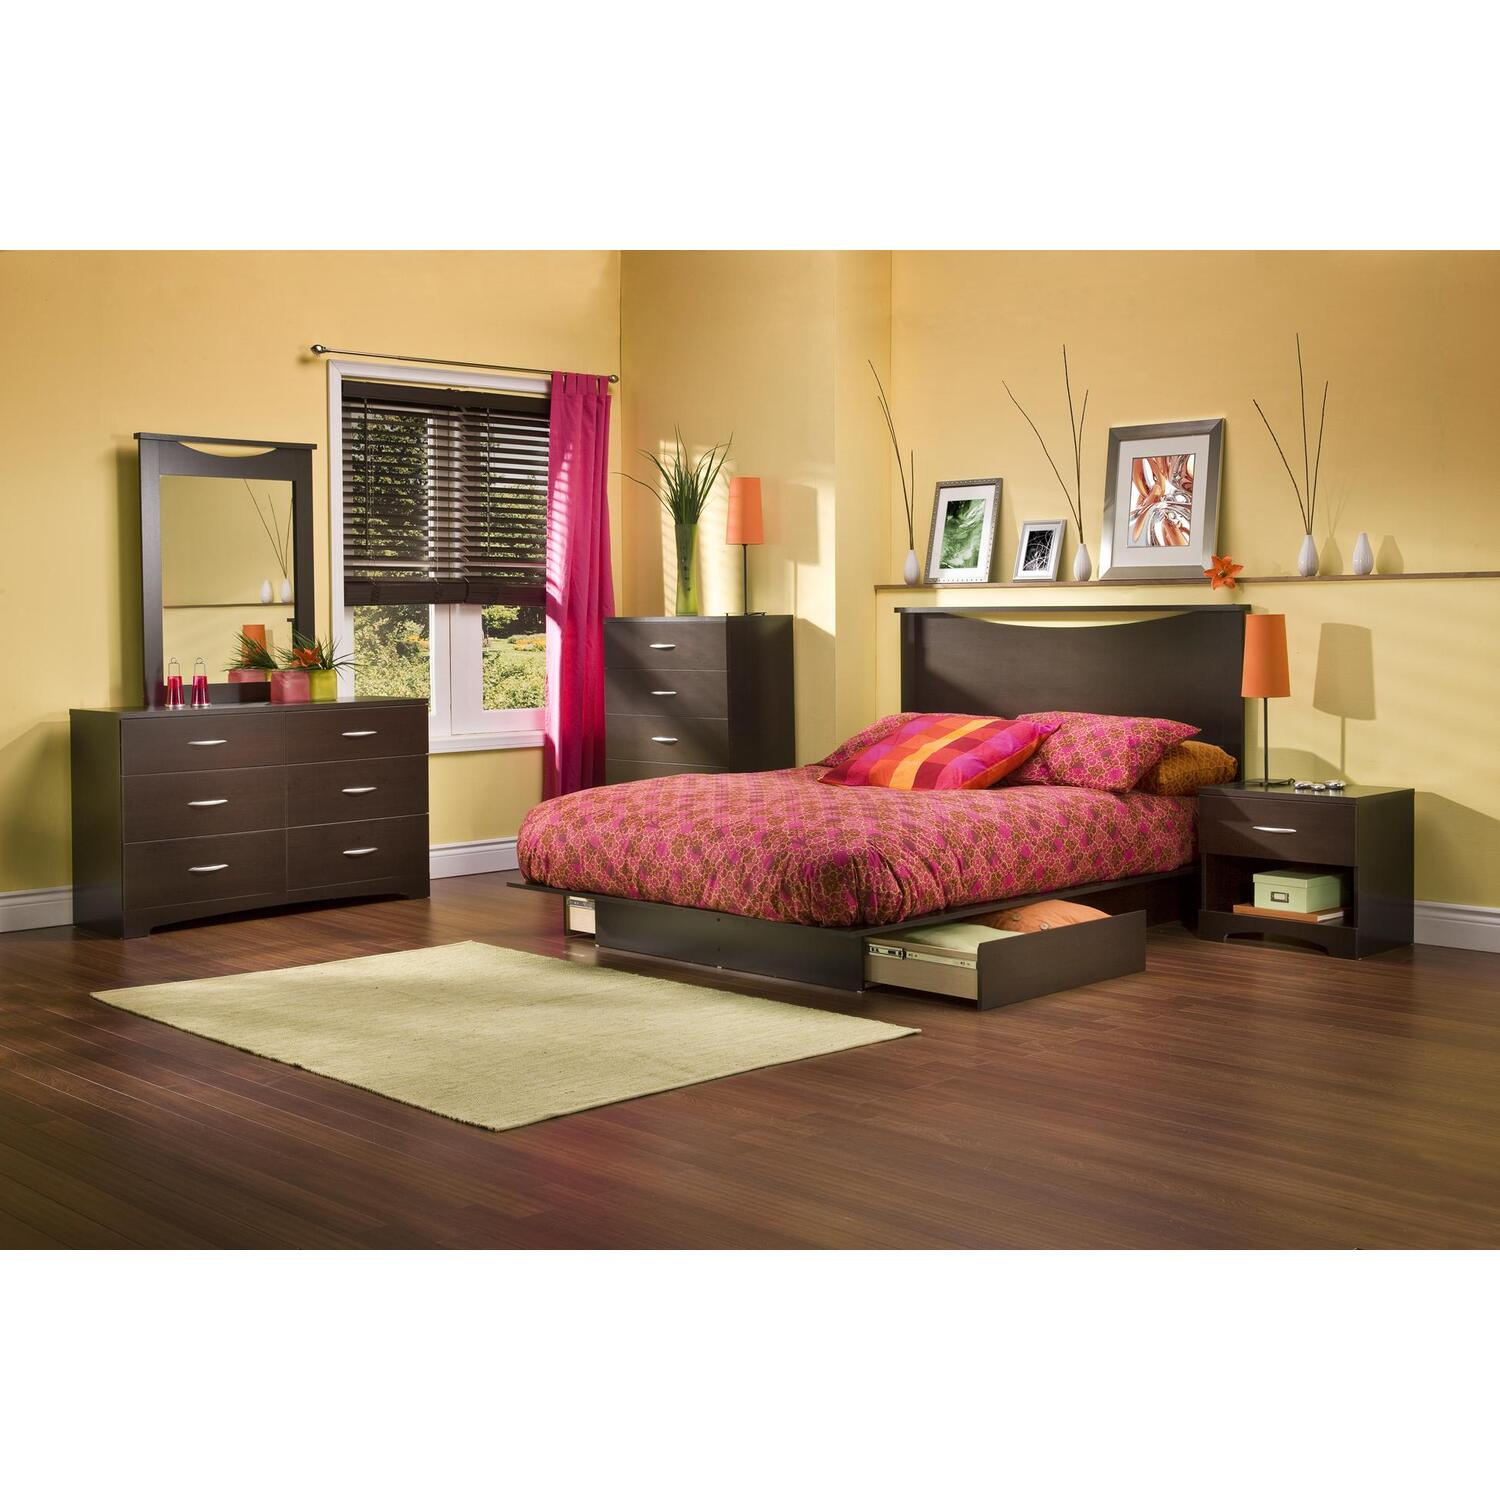 South shore back bay full queen platform 6 piece bedroom for Full bed bedroom sets